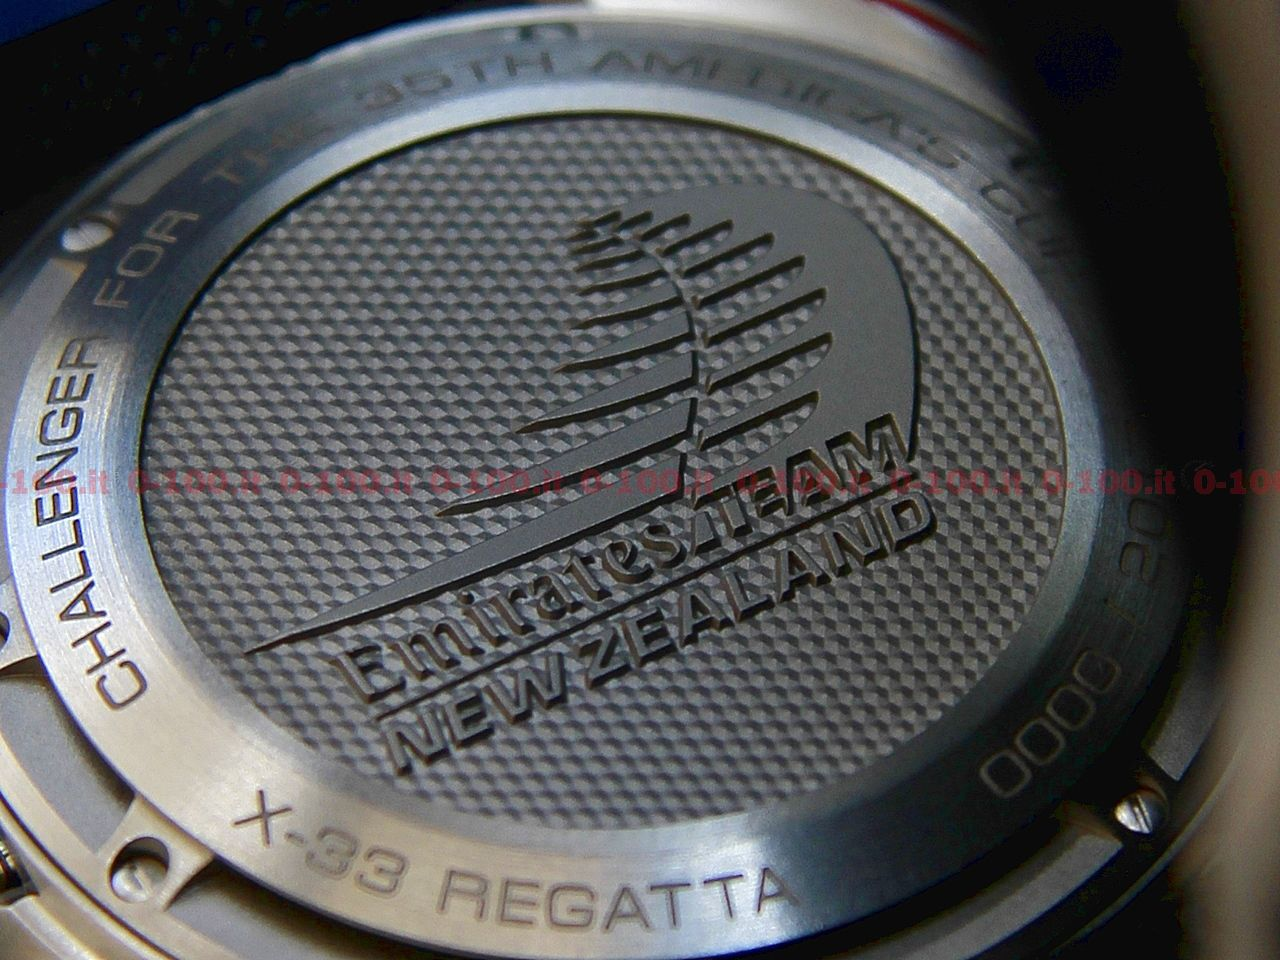 omega-speedmaster-x33-regatta-team-tilt-gc32_0-100-43